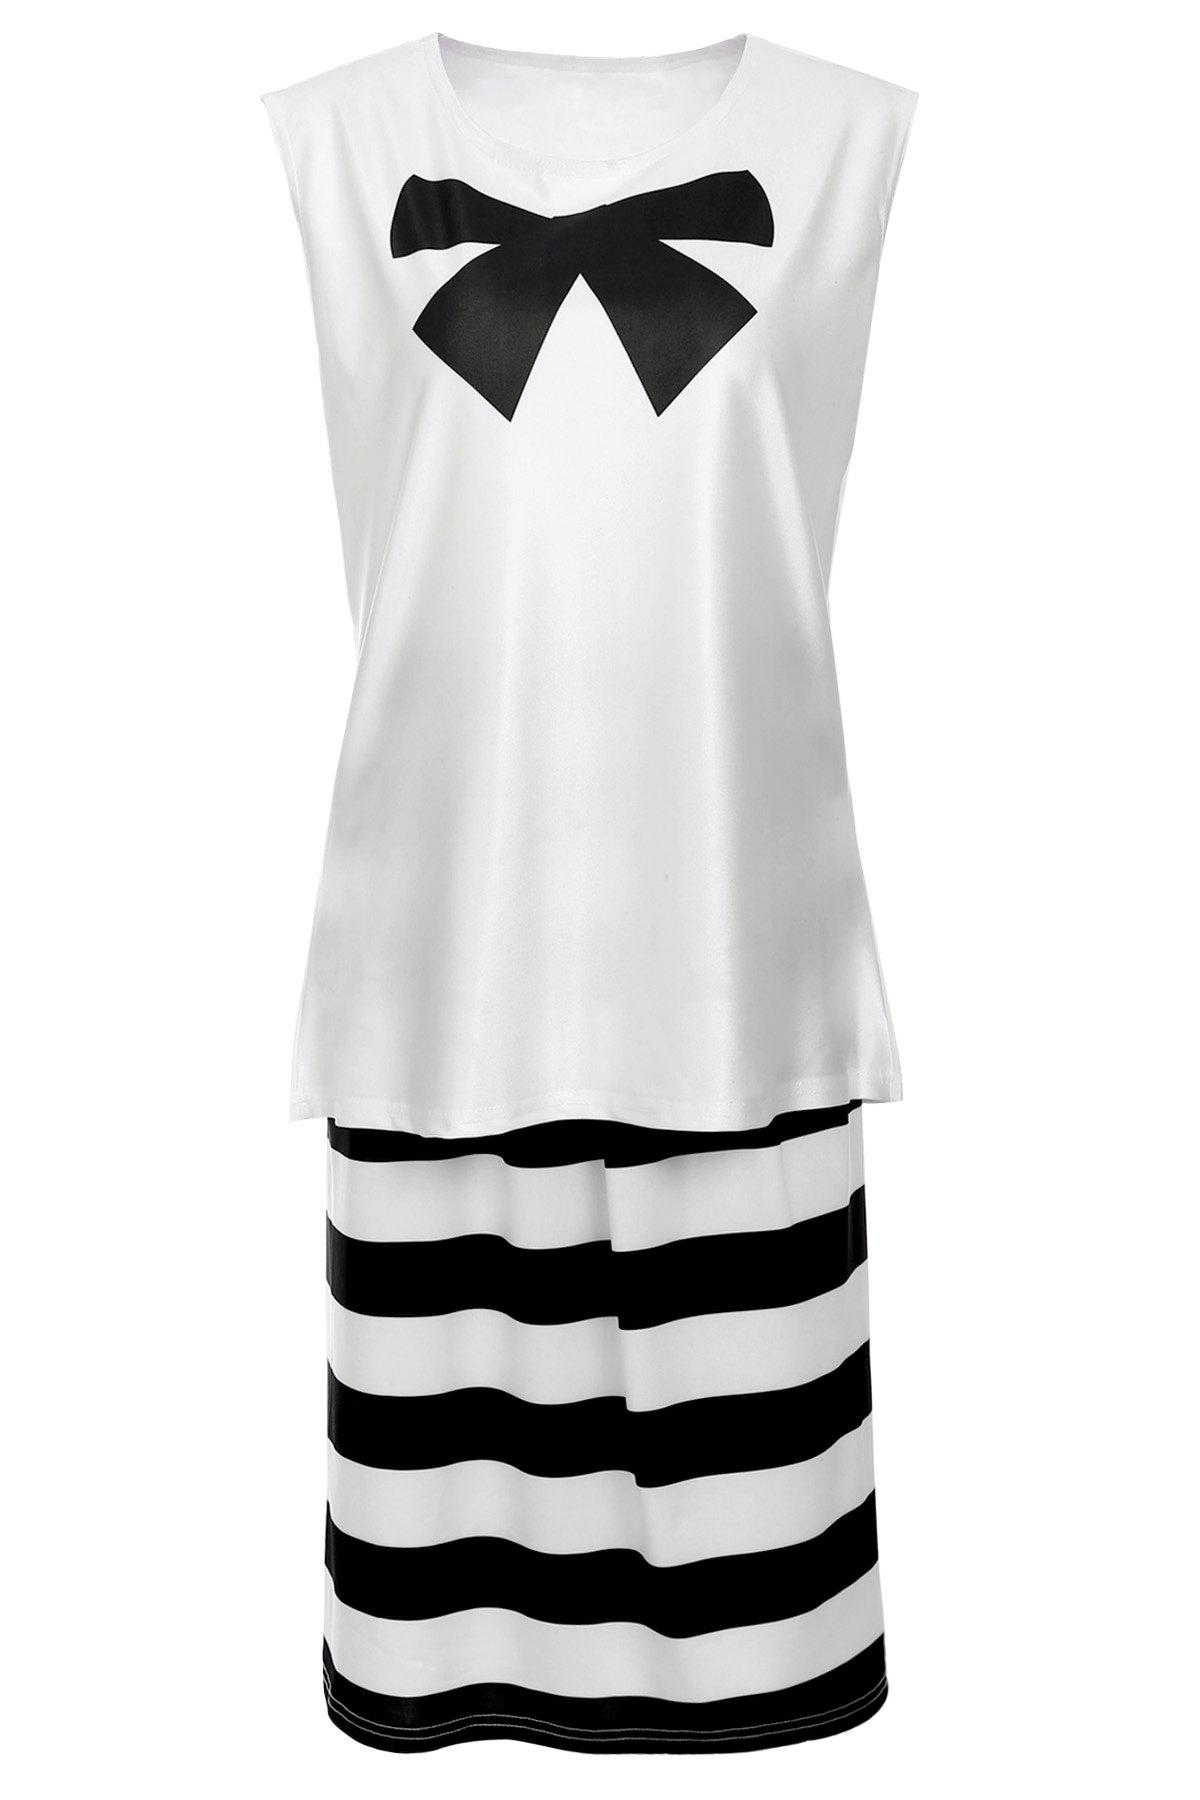 Attractive Sleeveless Bowknot Blouse and Striped Skirt Twinset For Women - WHITE/BLACK 2XL